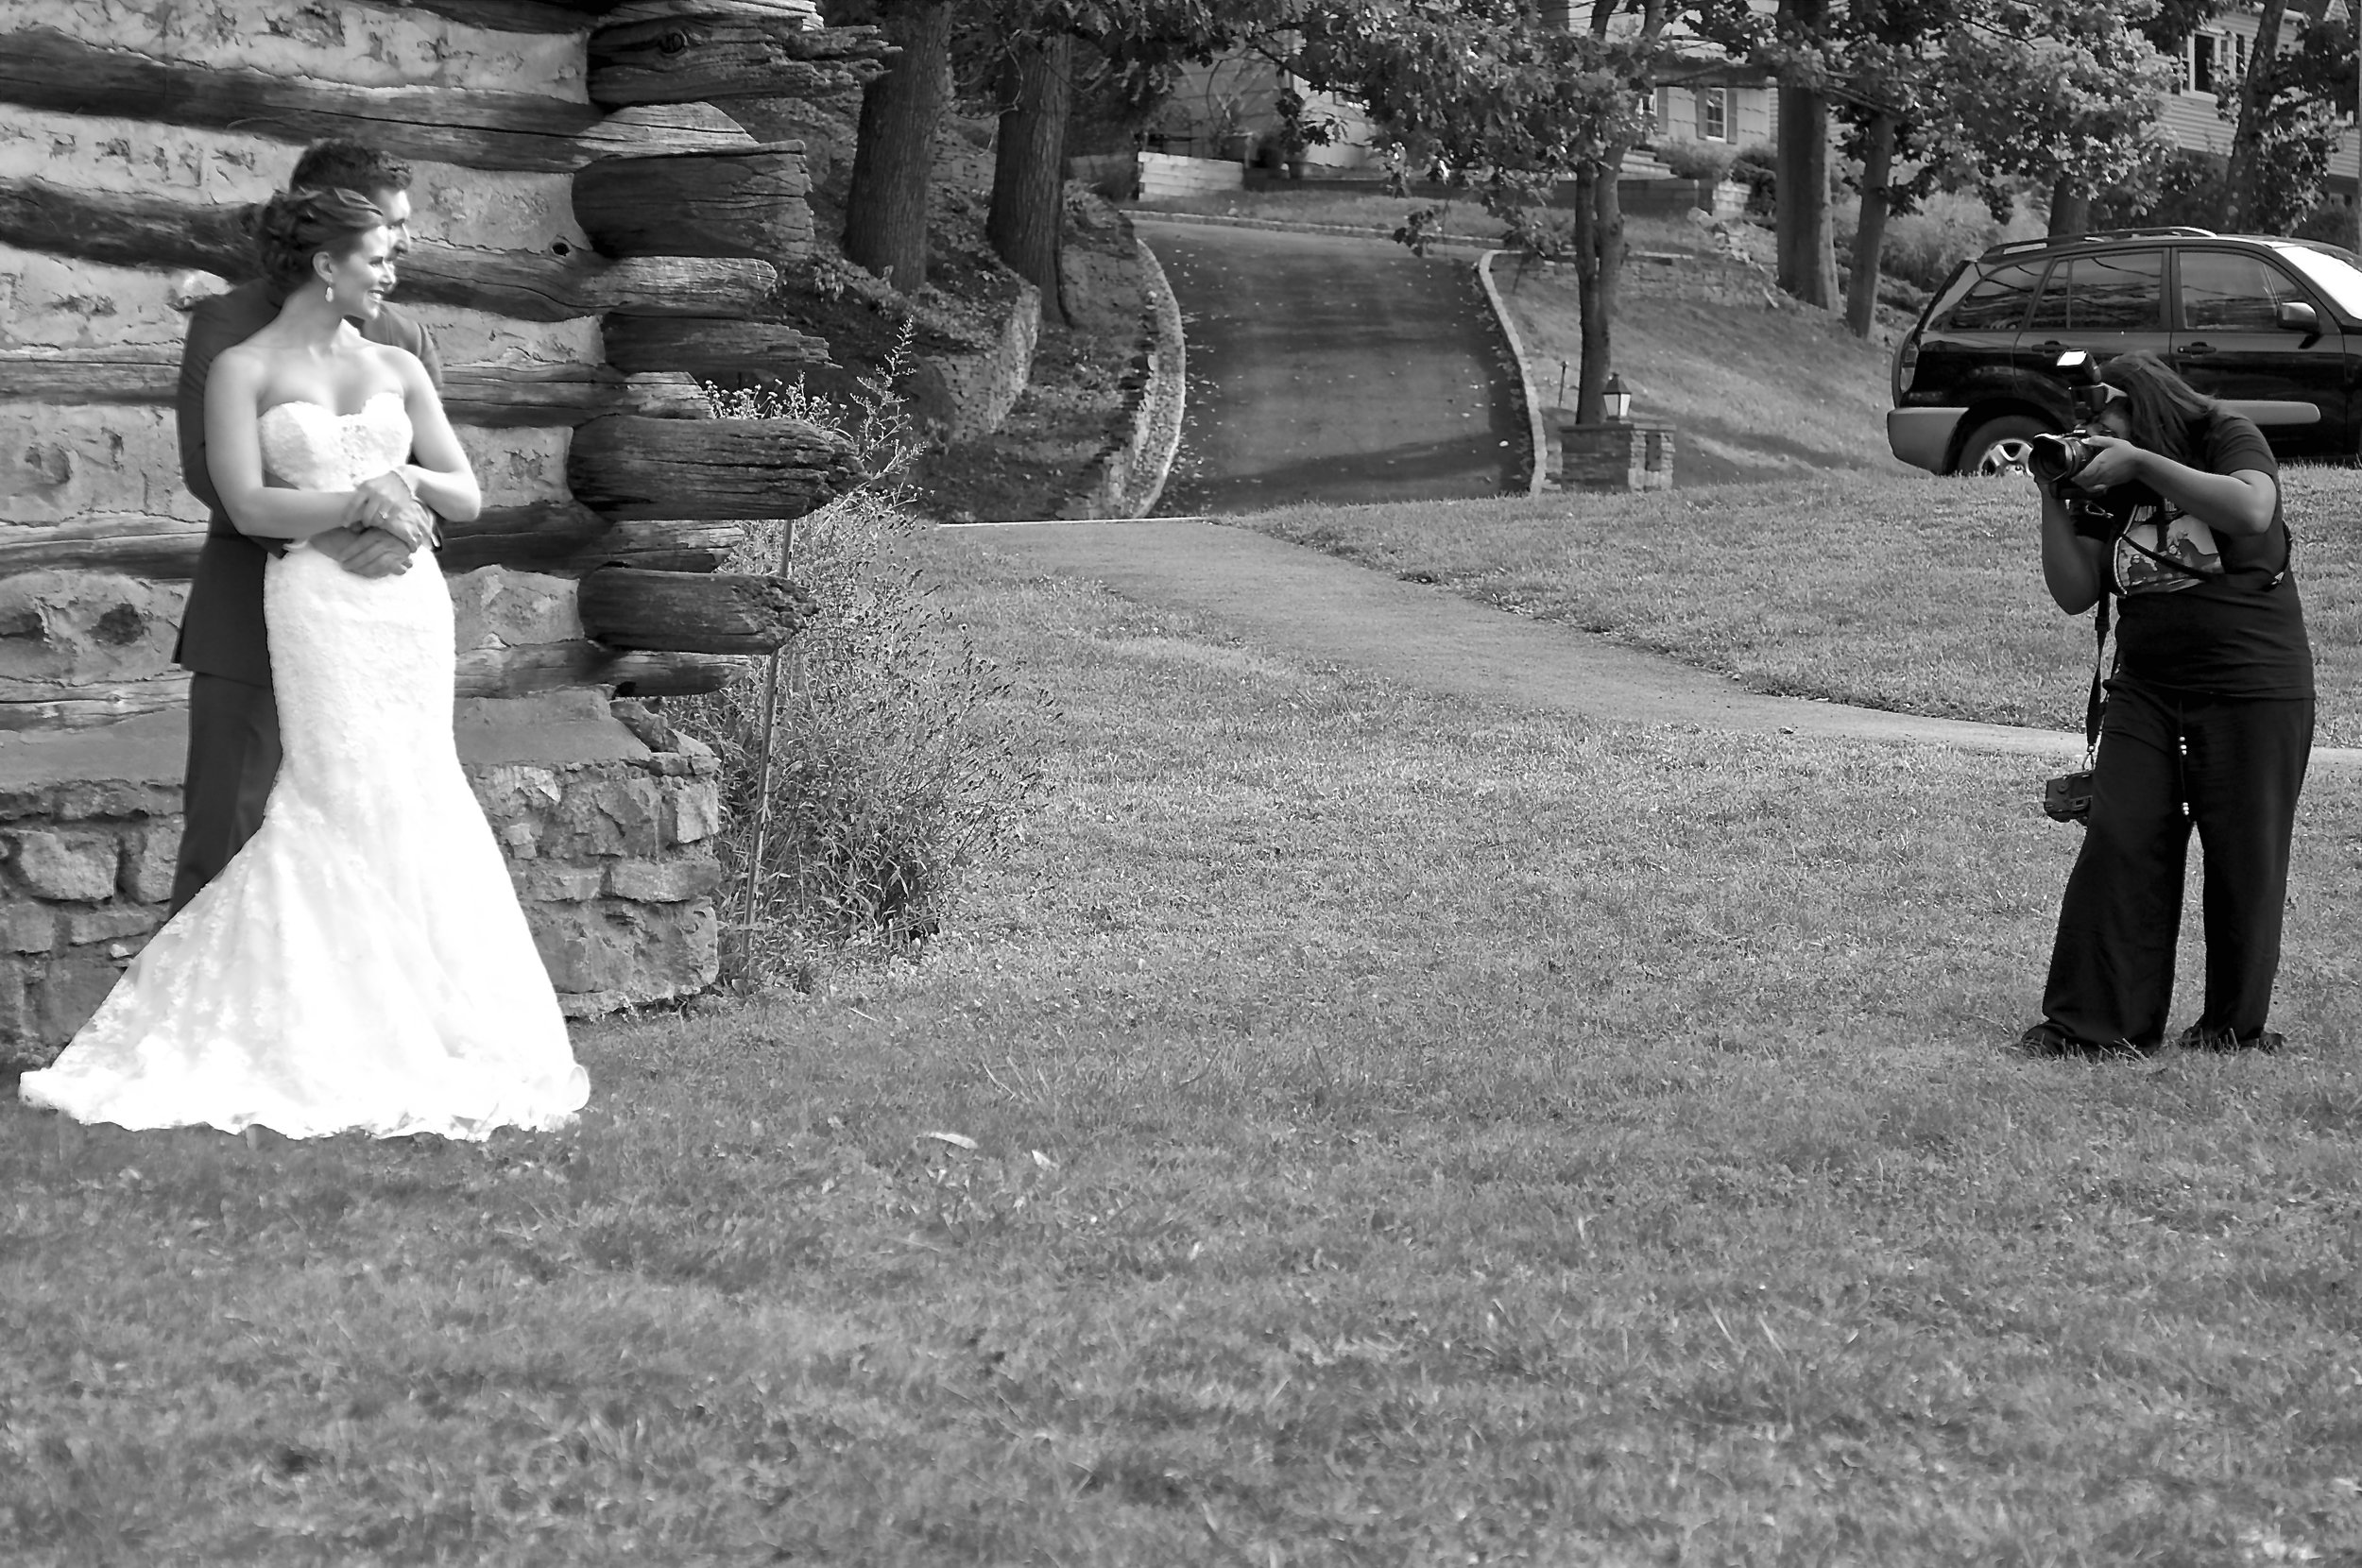 The Aisle Photography Head Photographer and Owner Dee Rosser photographing Mr & Mrs Kyle & Tyler Olsen on their gorgeous wedding day on September 25th, 2015 in beautiful Burnham Park, Morristown, NJ. Congratulations to this wonderful couple who just recently celebrated their 1 year anniversary!